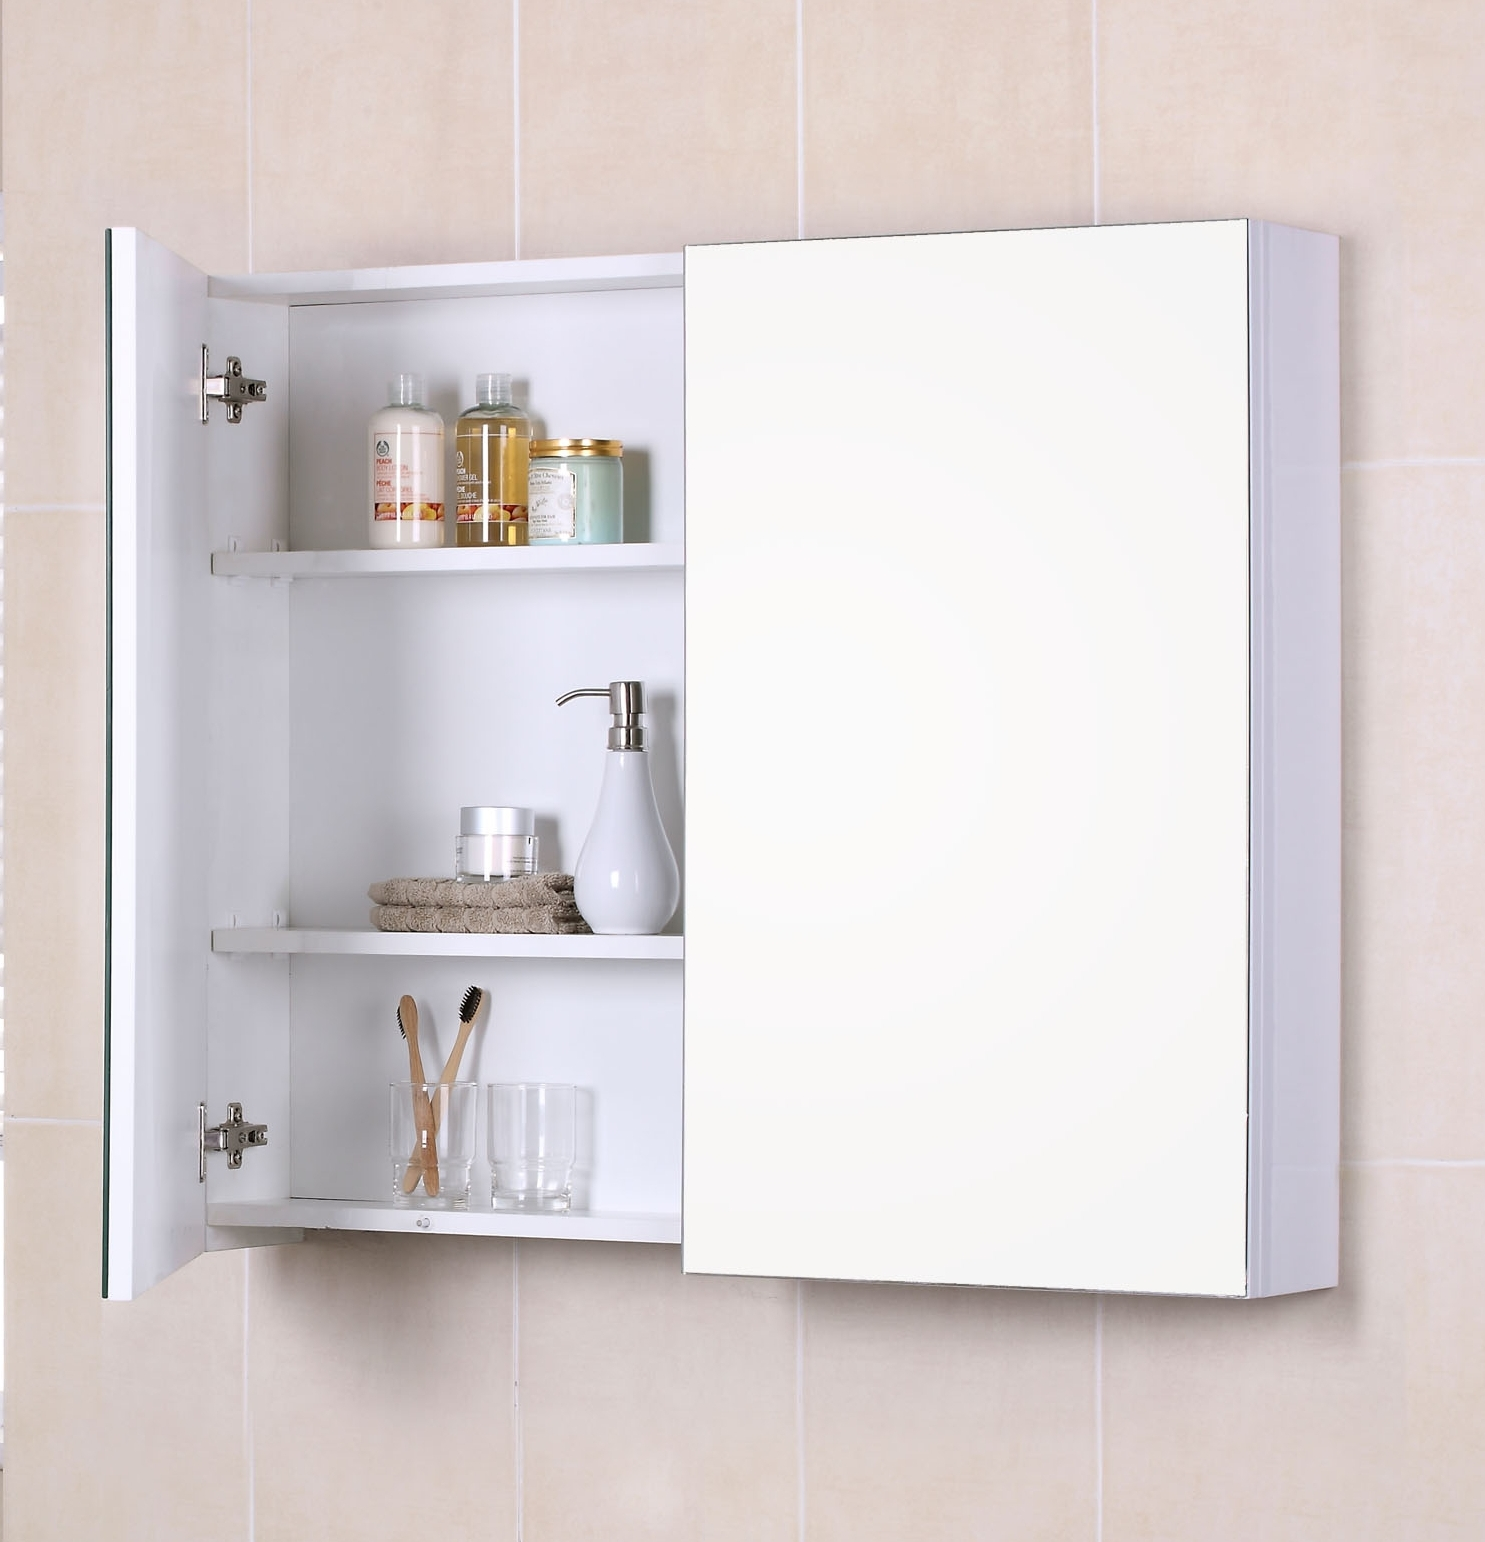 Bathroom Wall Cabinets No Mirror